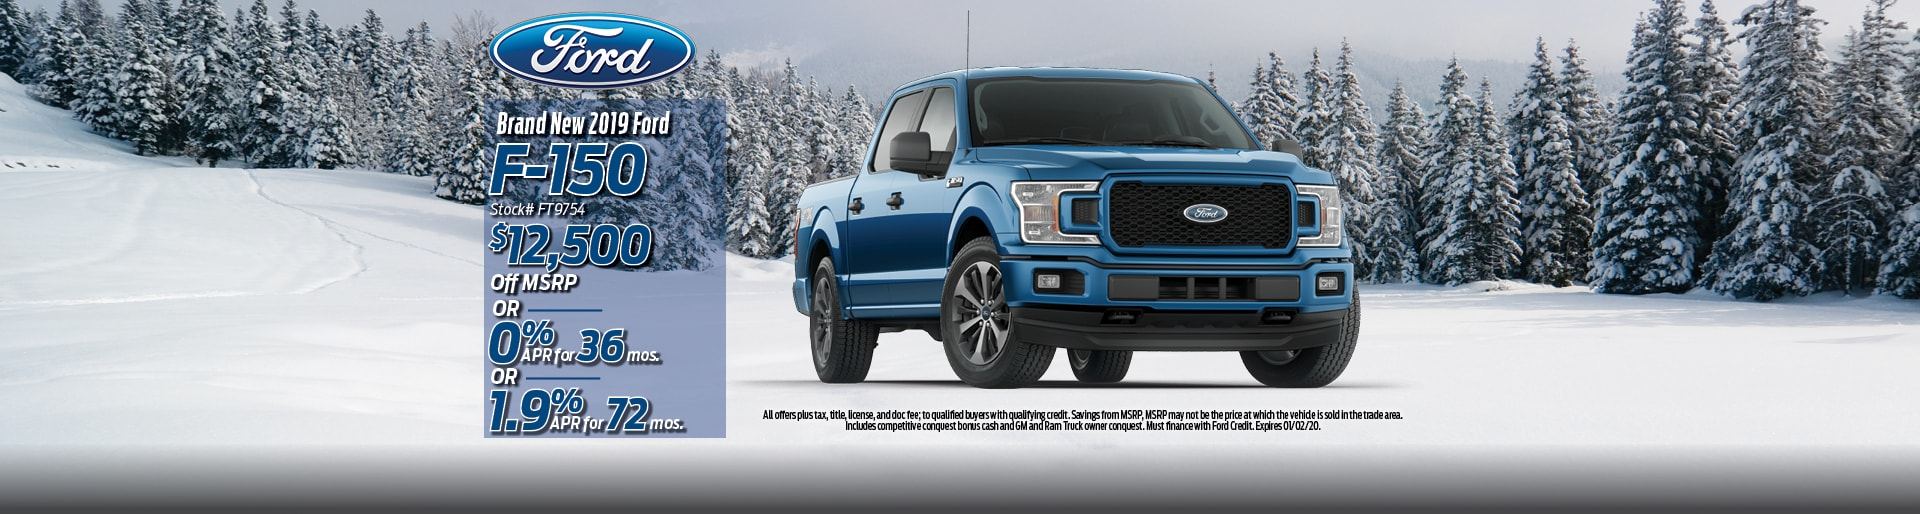 2019 Ford F-150 Lease Deal